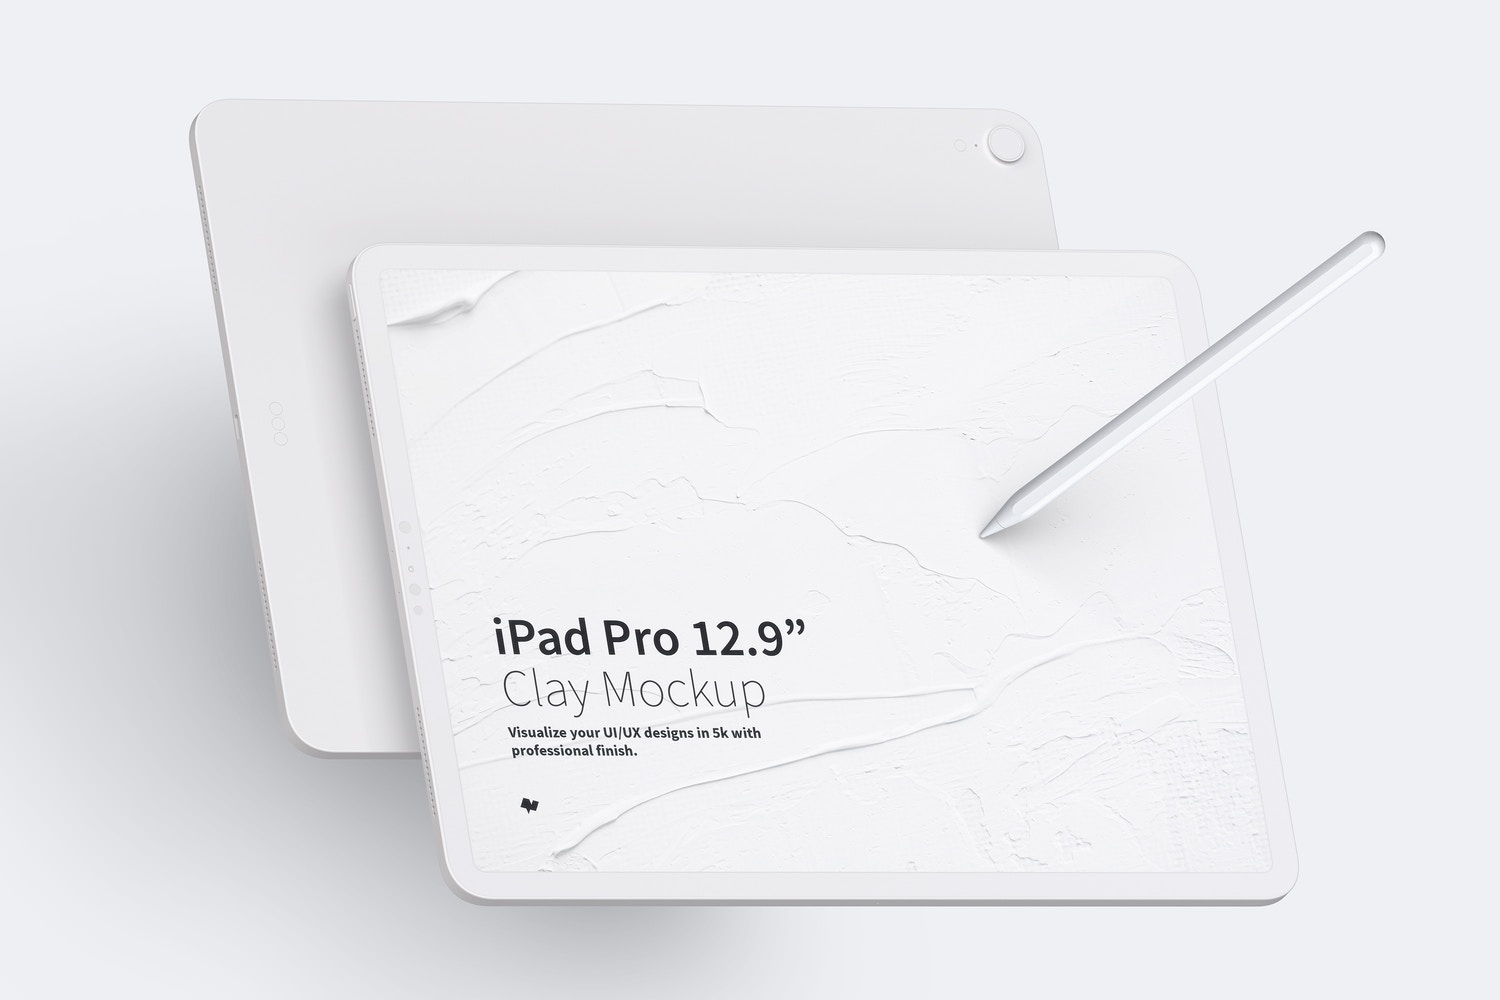 "Clay iPad Pro 12.9"" Mockup, Landscape Front and Back View by Original Mockups on Original Mockups"